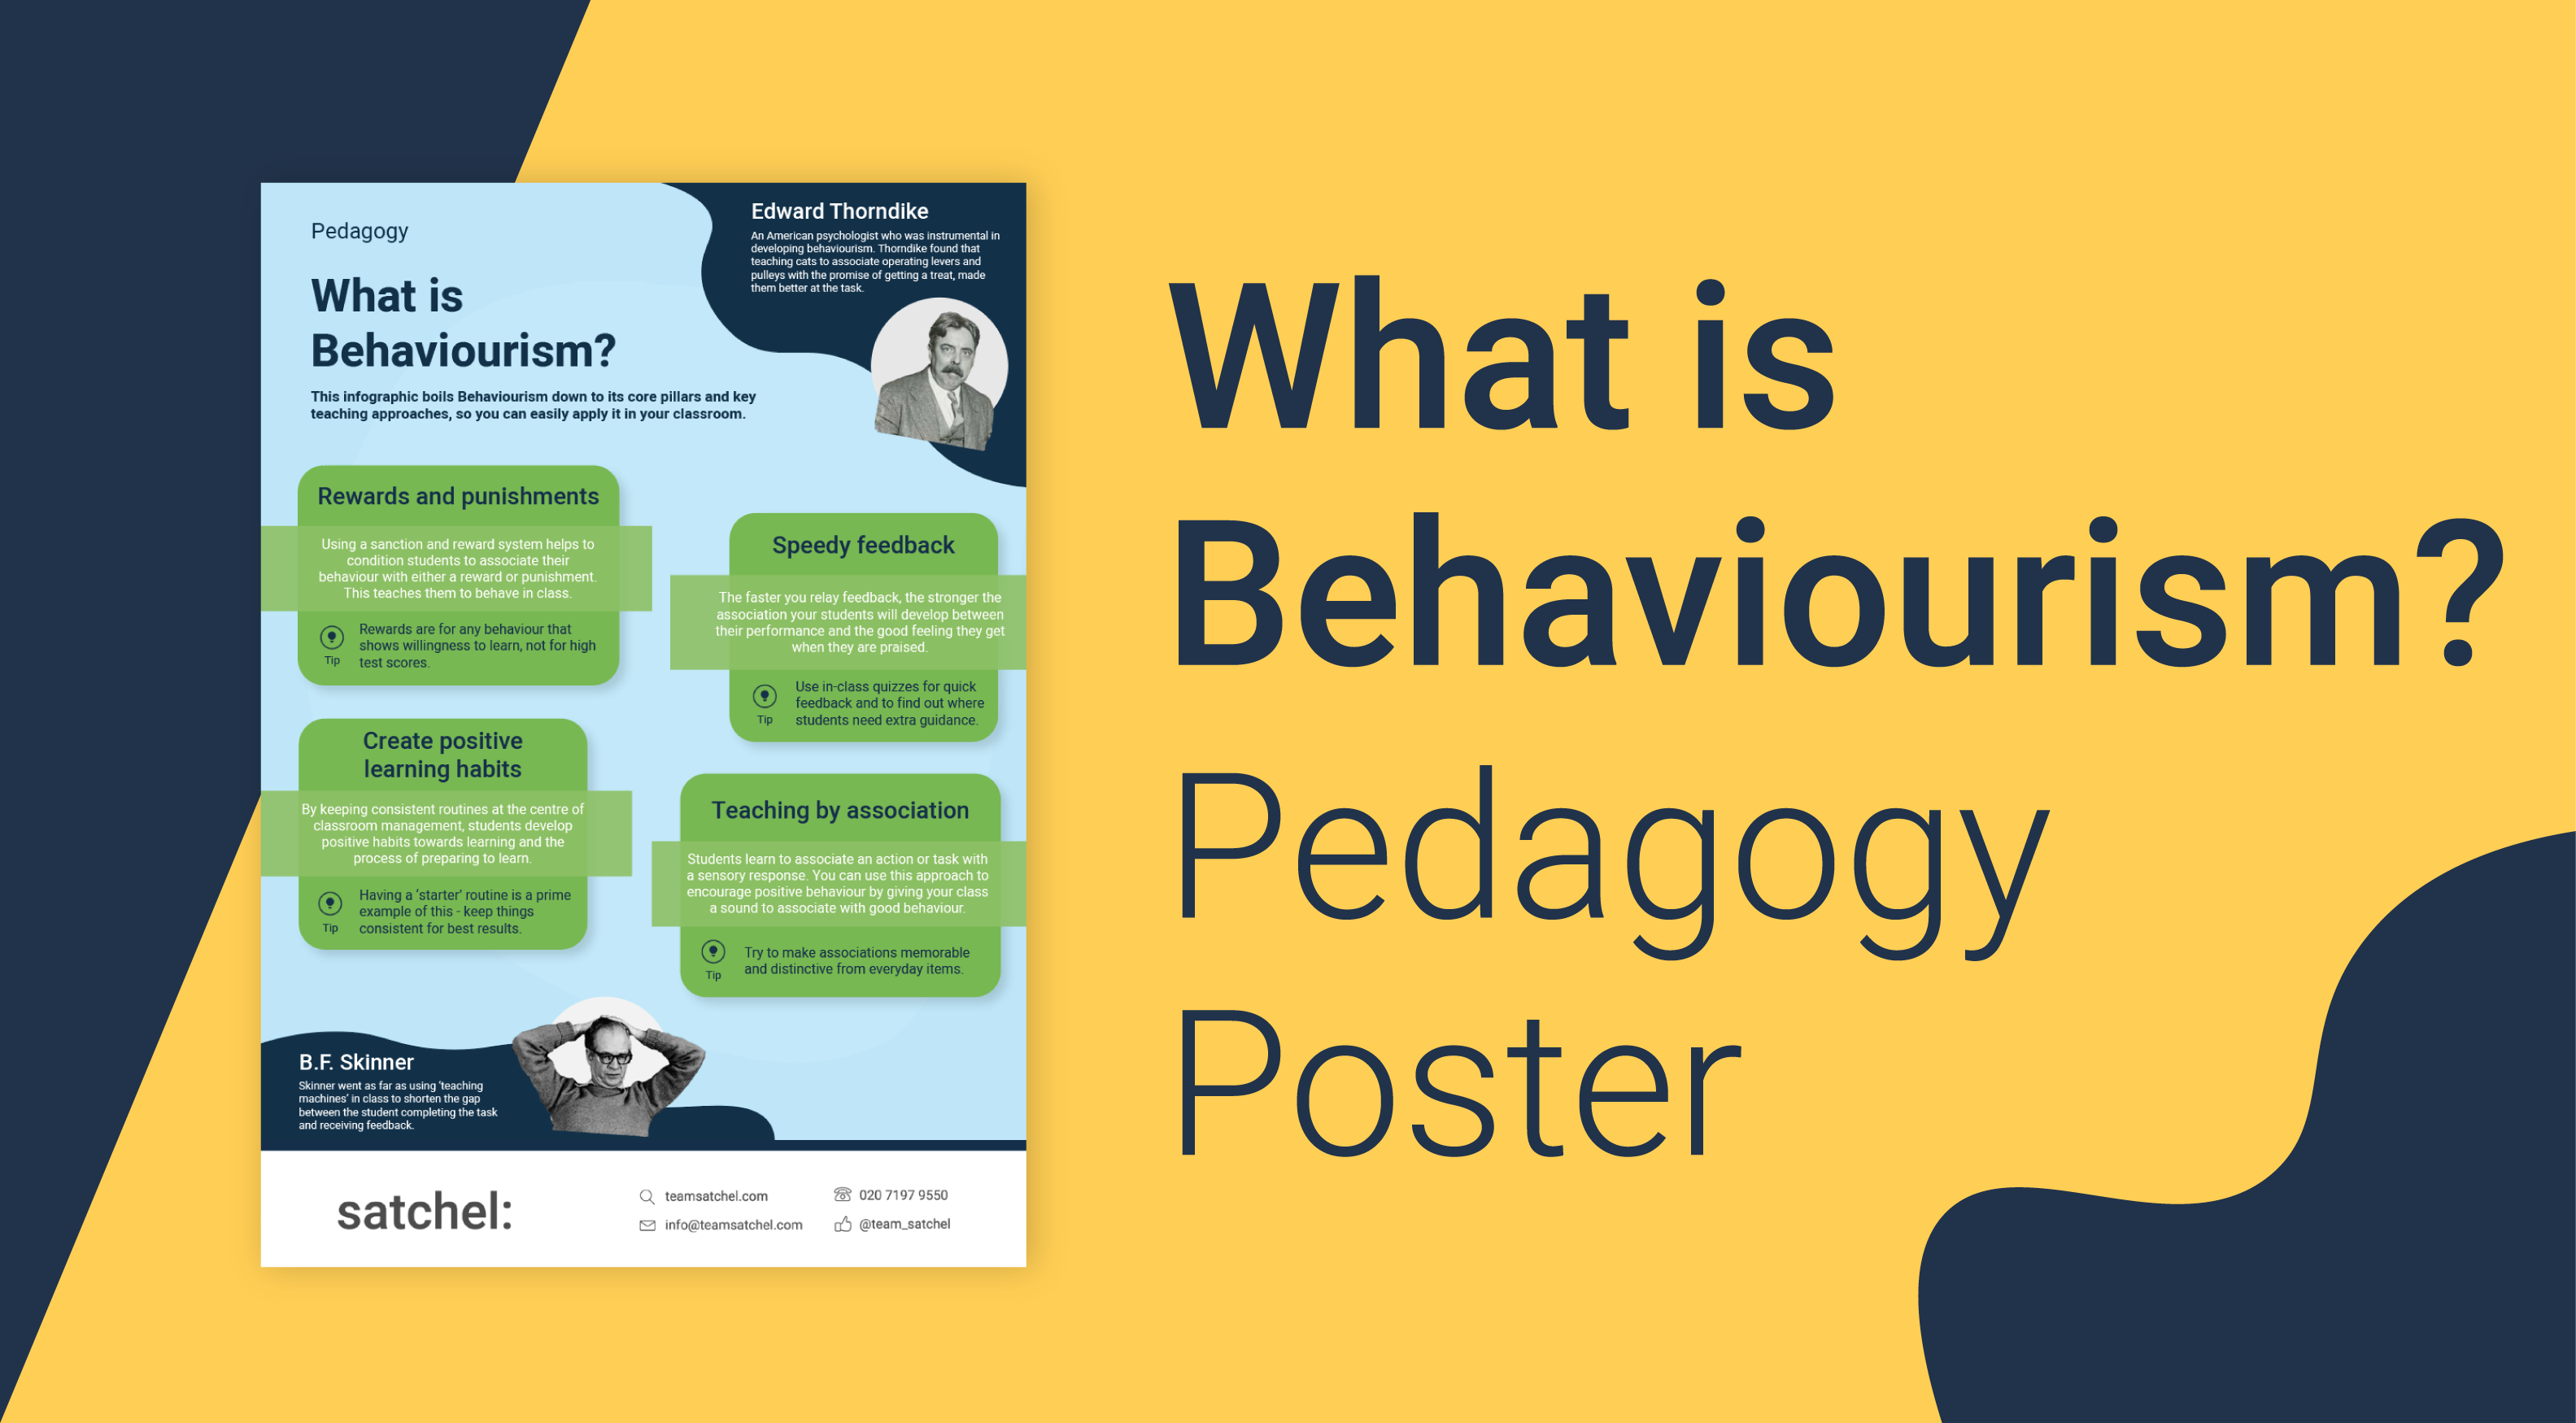 Pedagogy Behaviourism Poster